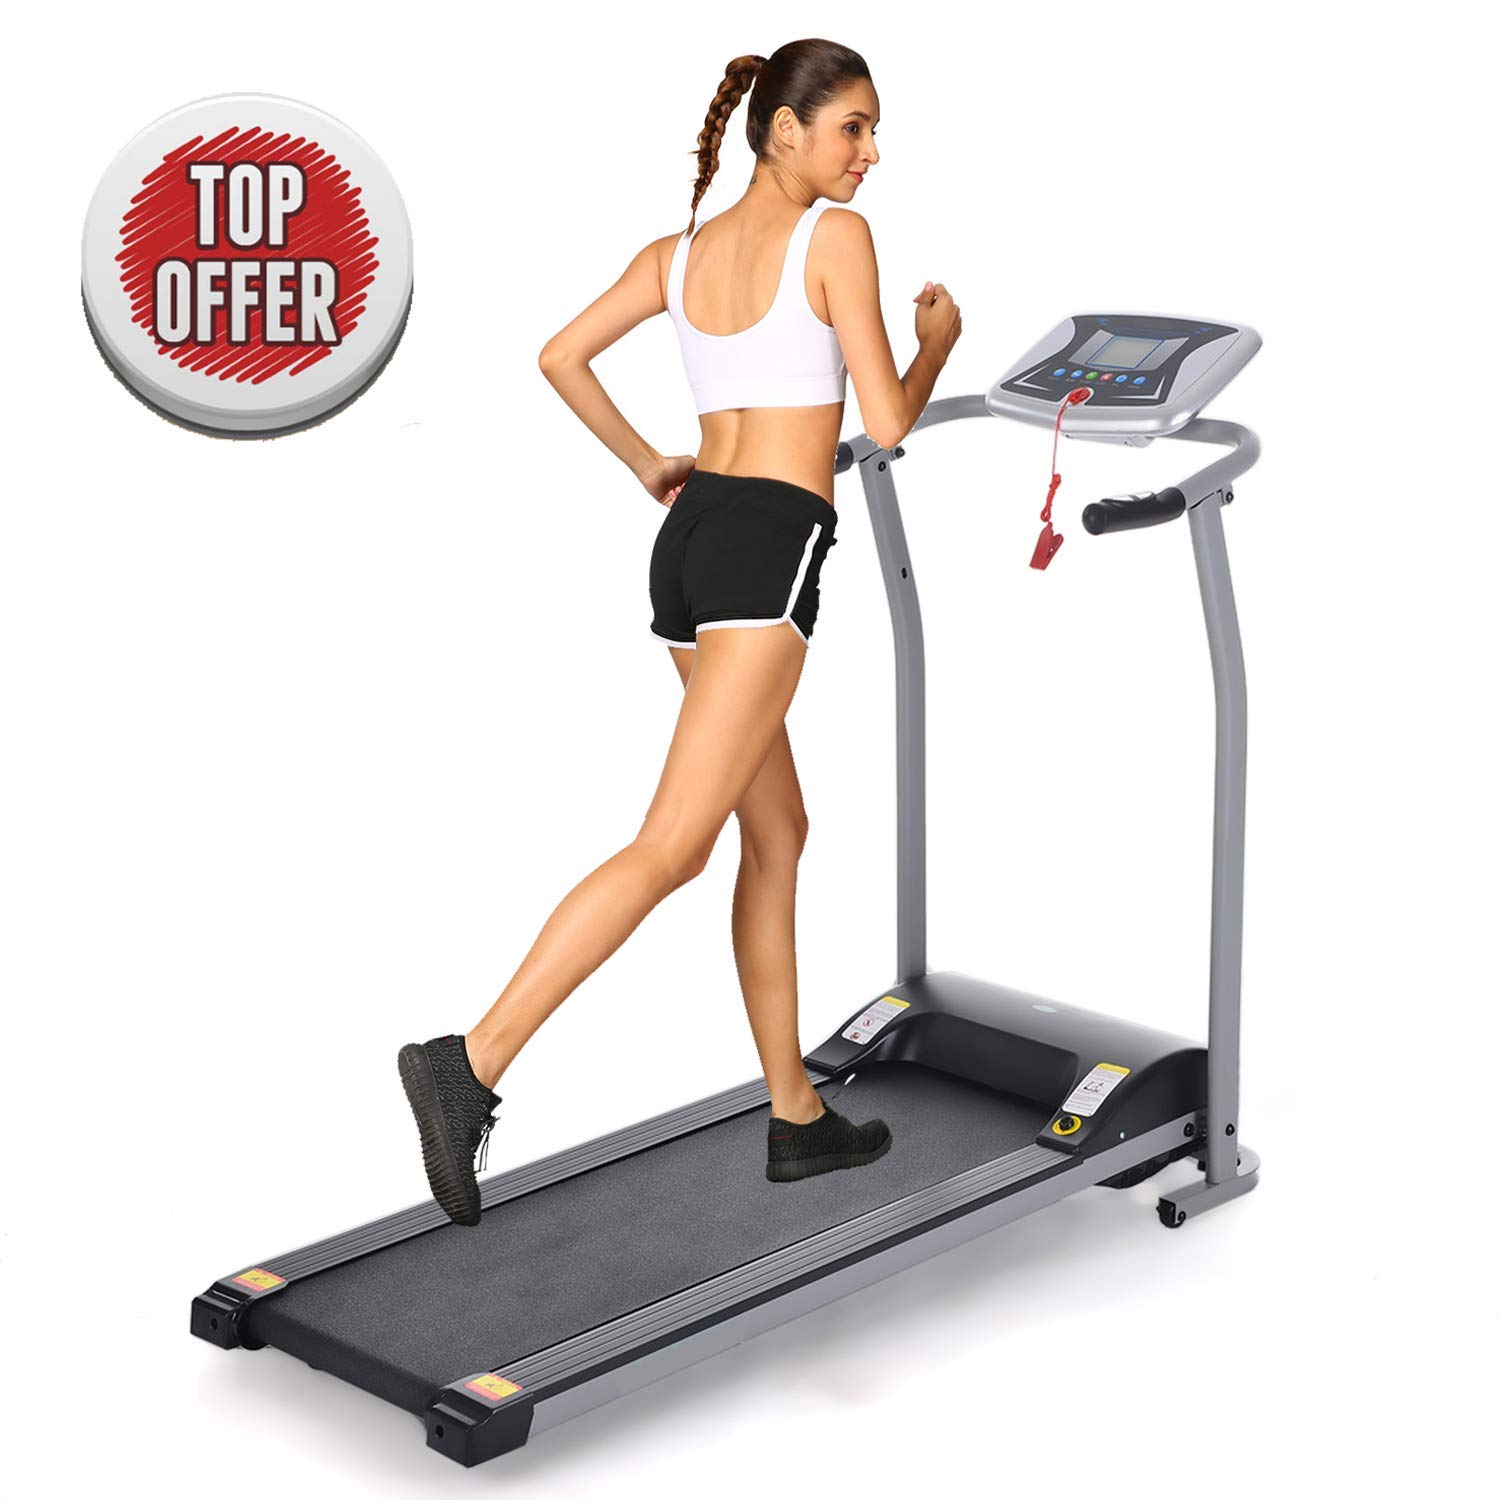 Folding Electric Treadmill Running Machine Power Motorized for Home Gym Exercise Walking Fitness (1.5 HP - Silver - Not Incline) by ncient (Image #1)